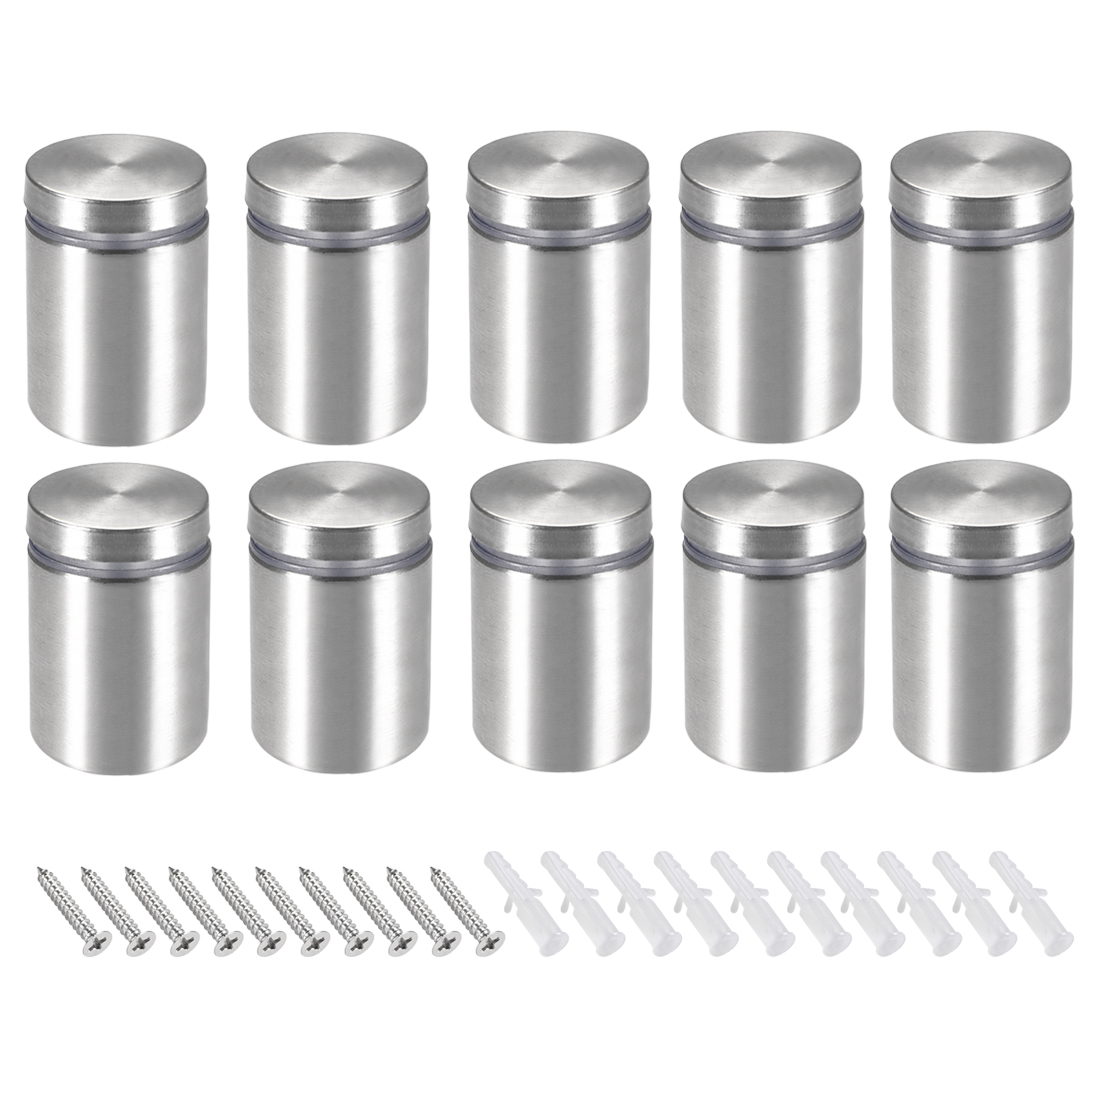 Glass Standoff Mount Stainless Steel Wall Standoff 25mm Dia 32mm Length 10Pcs